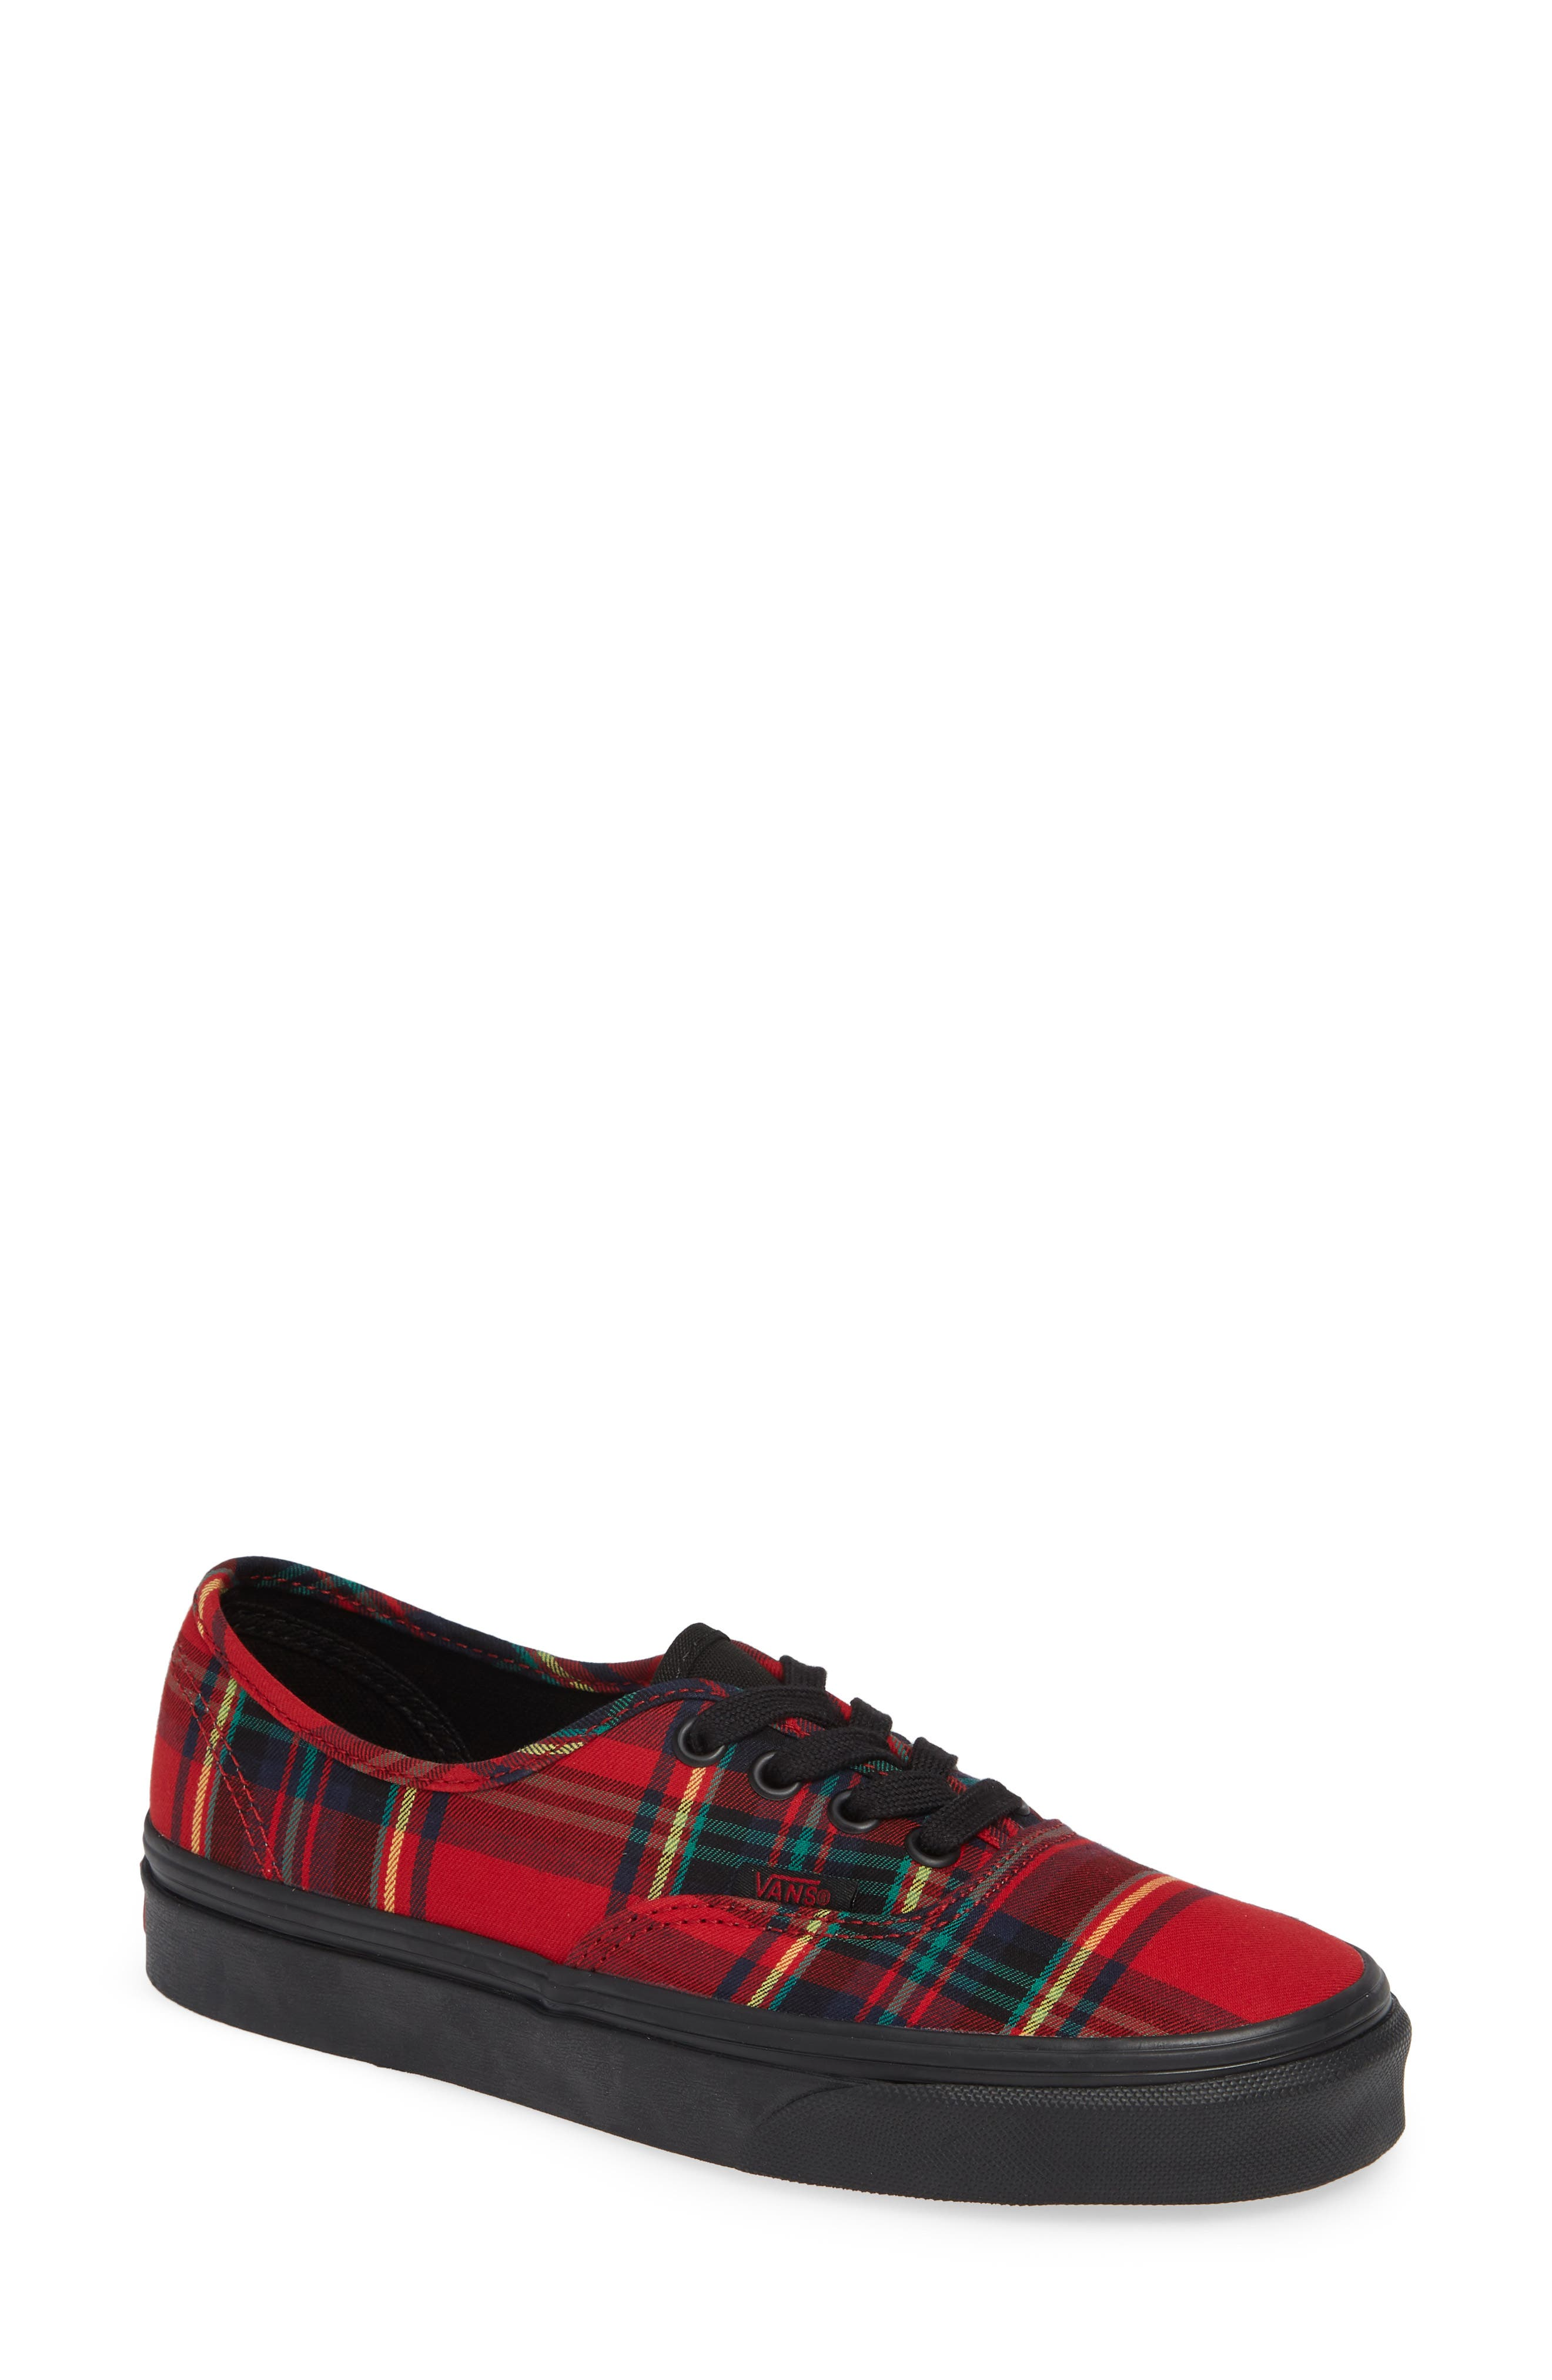 'Authentic' Sneaker,                         Main,                         color, Plaid Mix Red